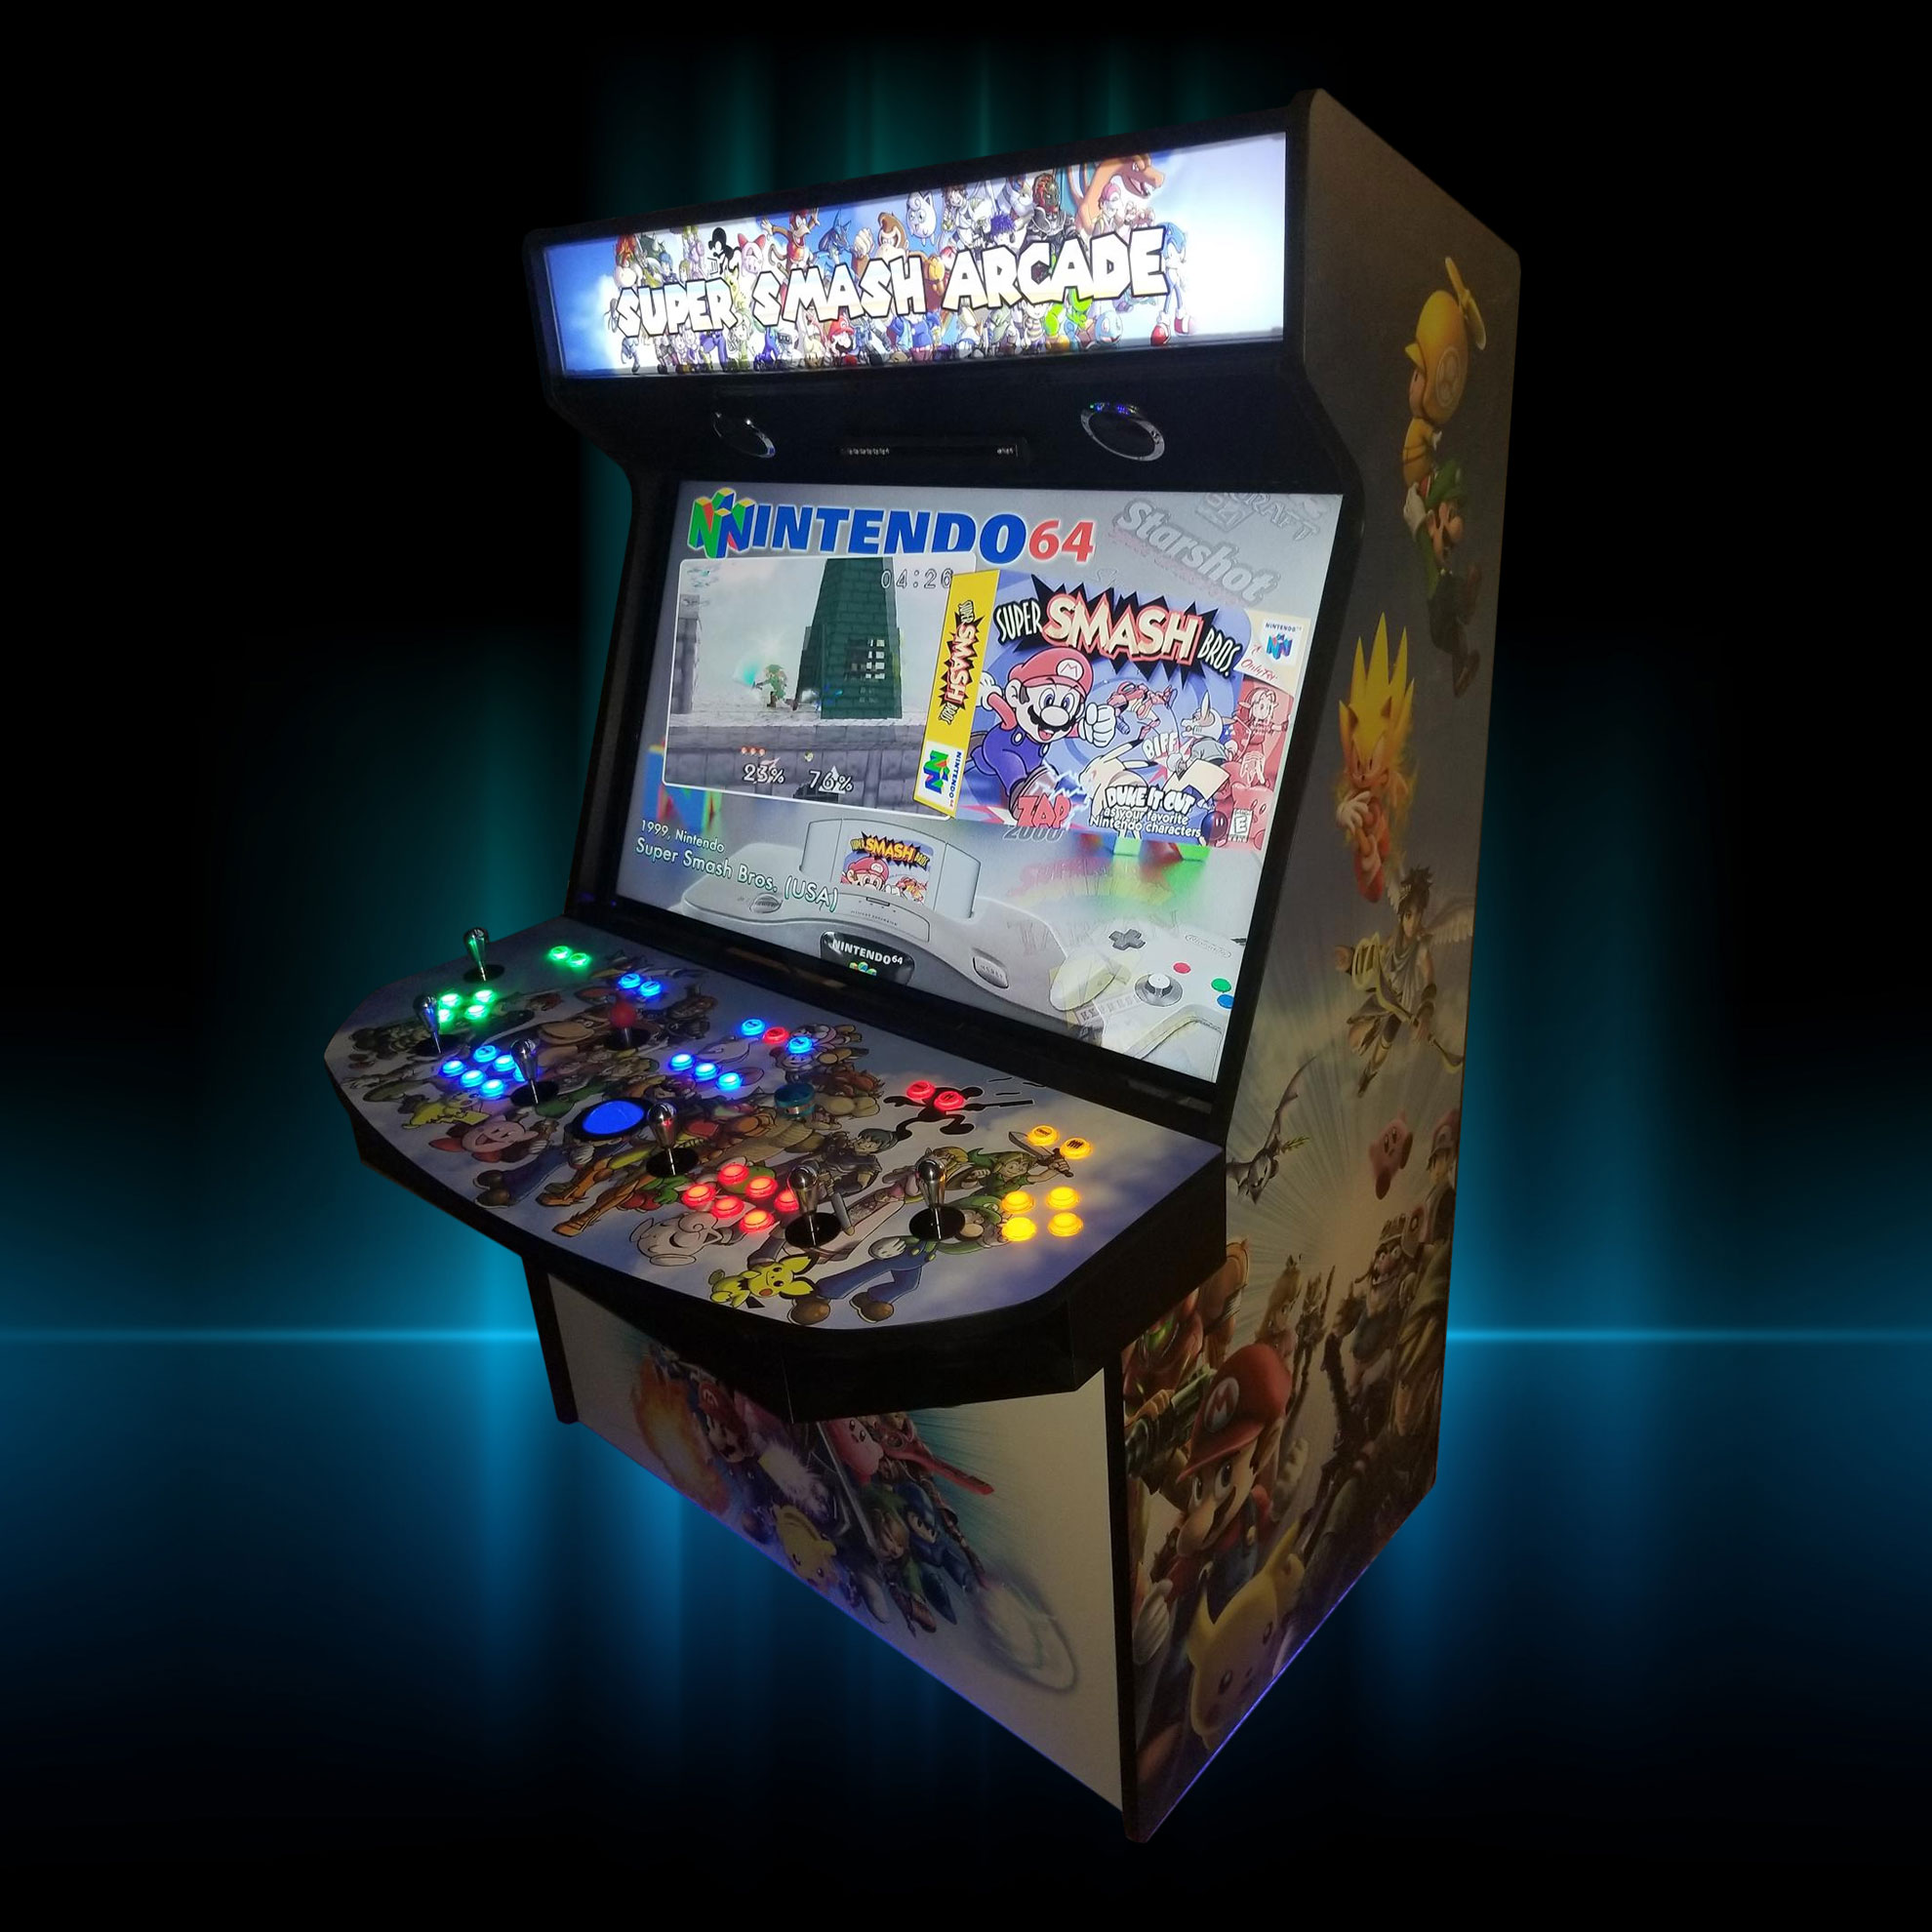 Arcades R Fun – Live the dream with authentic home arcade games